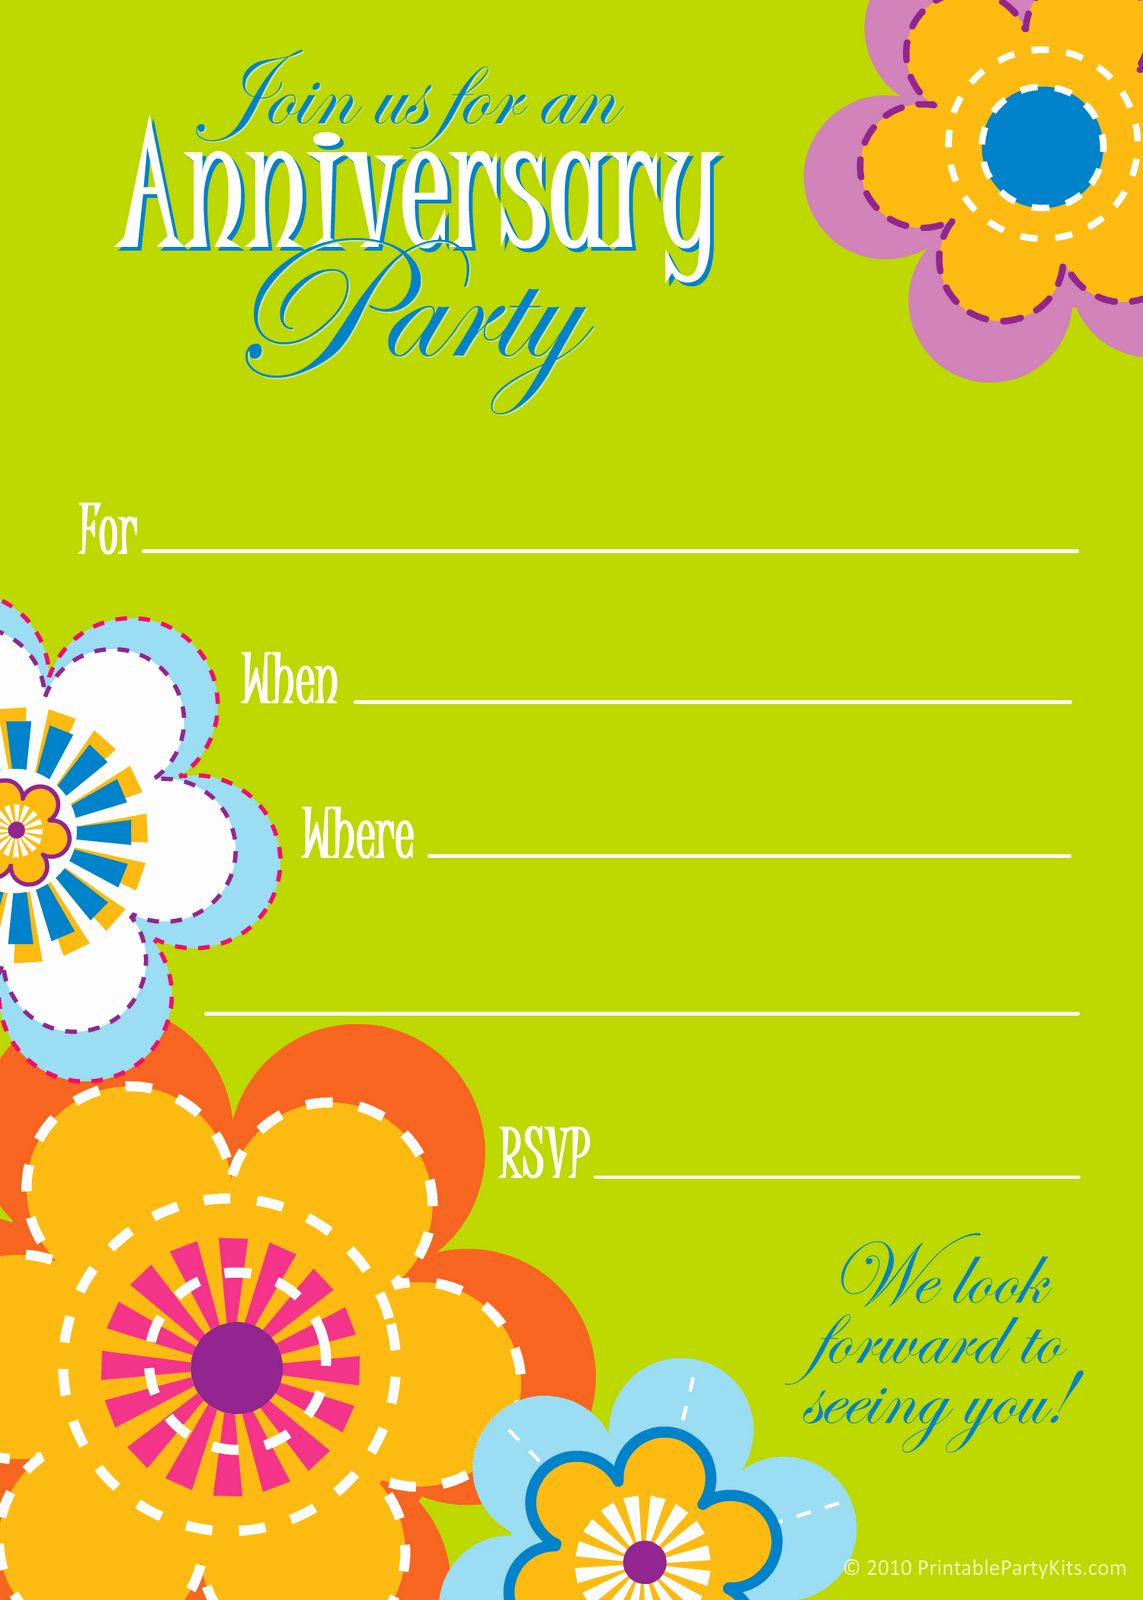 Free Printable Anniversary Invitations Beautiful Wedding Anniversary Invitation Template Free